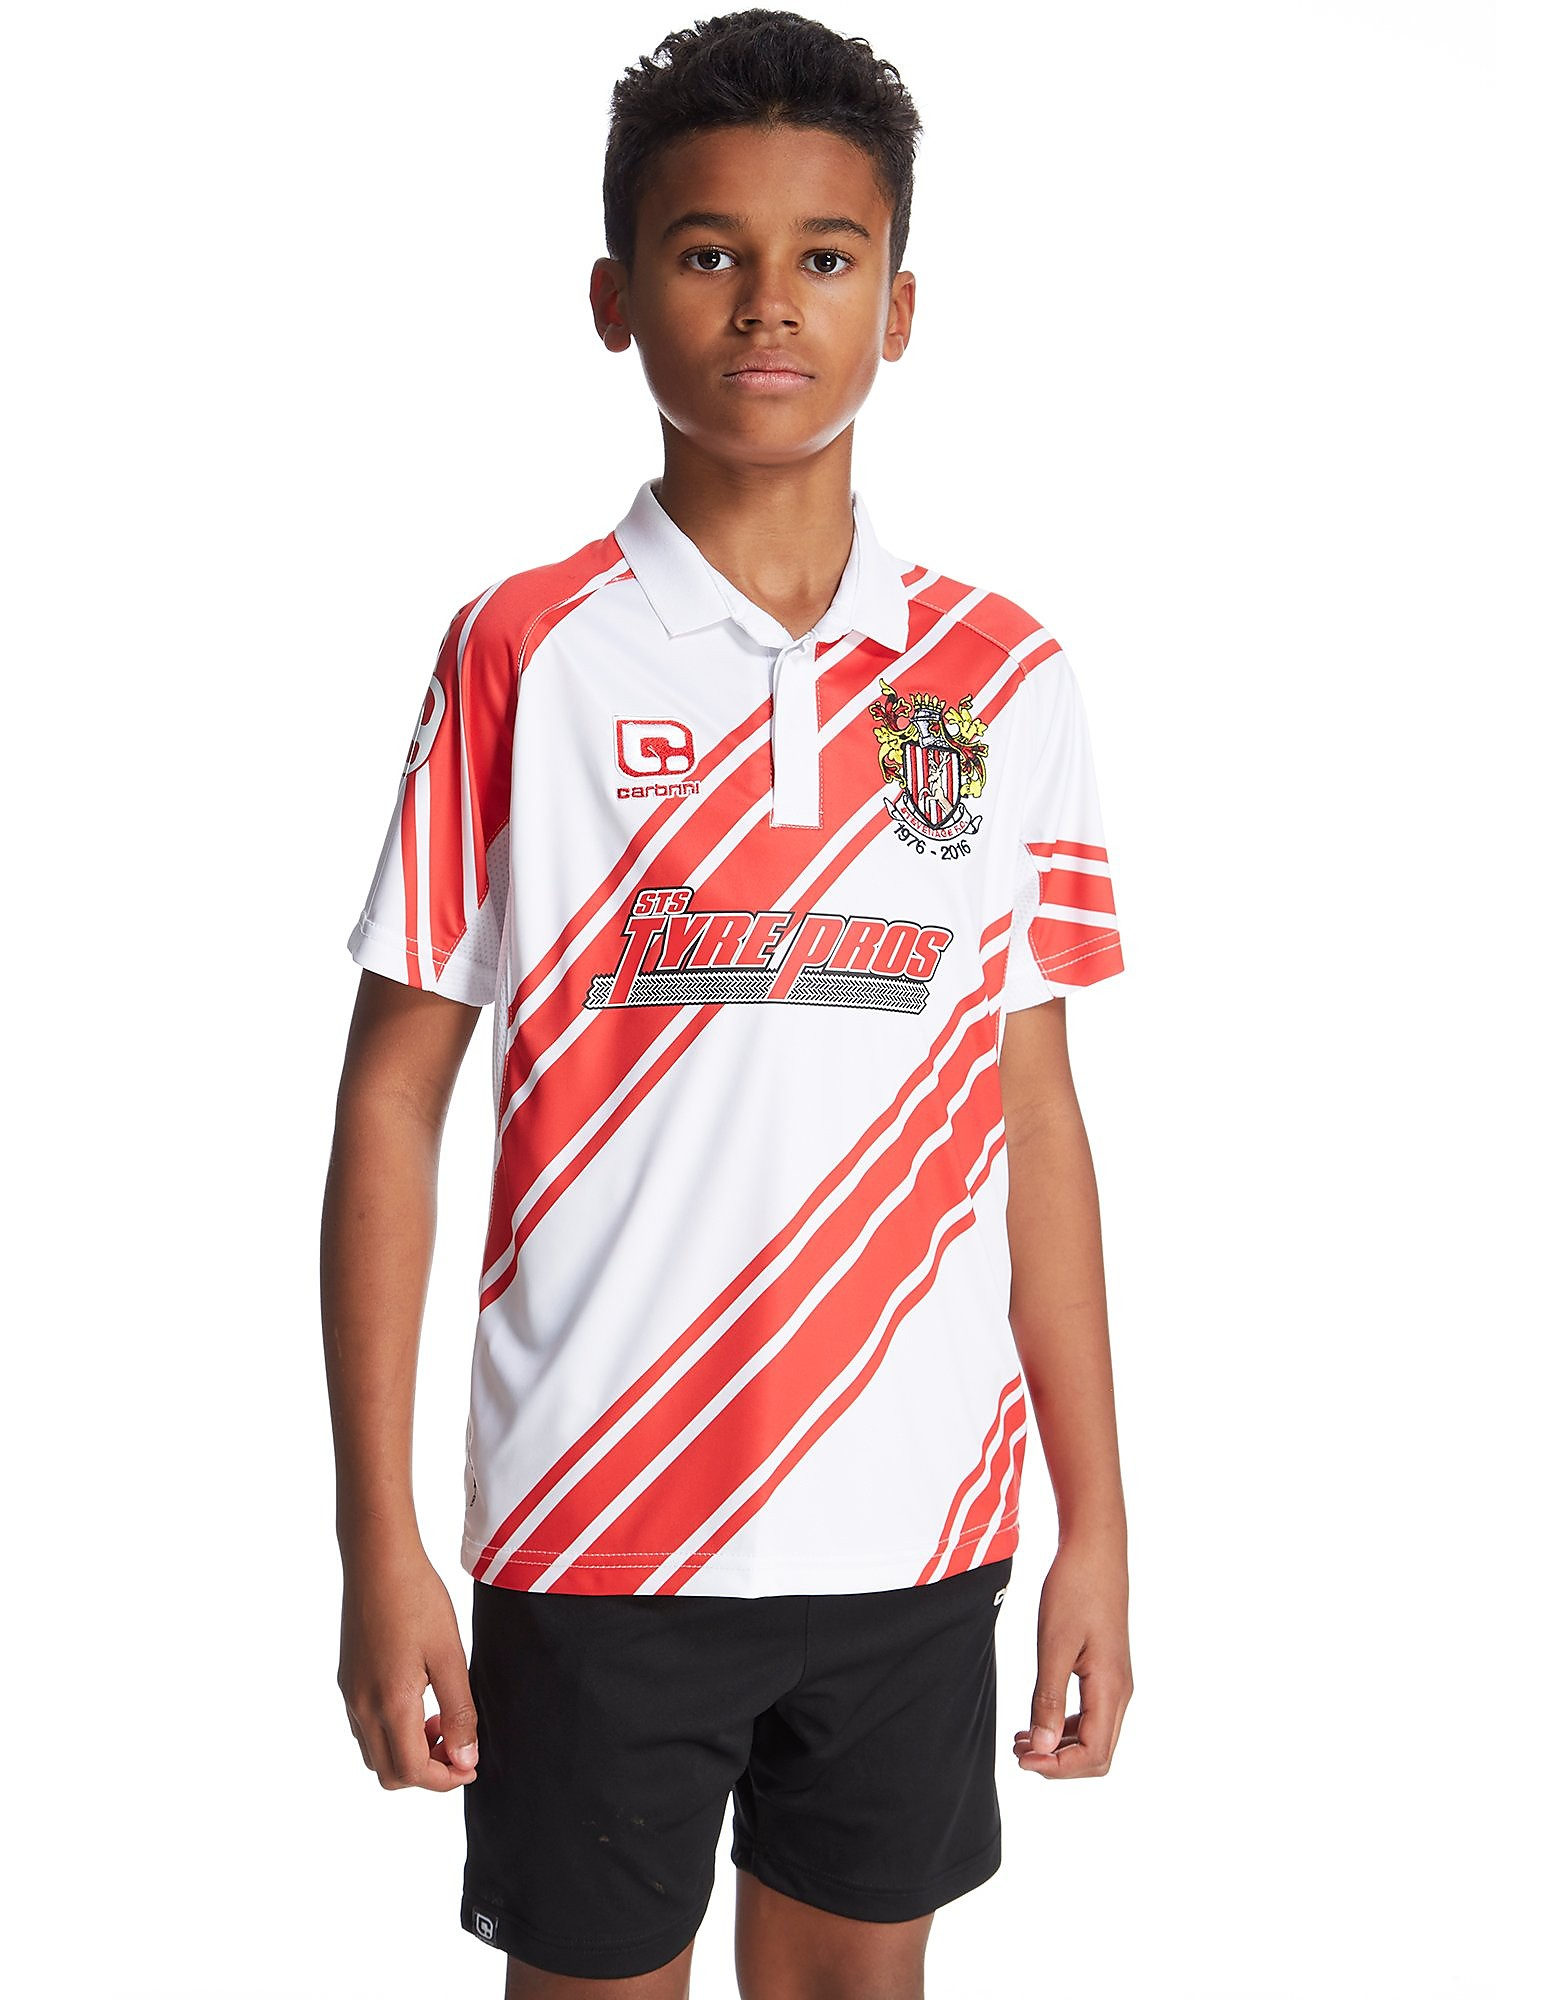 Carbrini Stevenage FC 2016/17 Heimtrikot für Kinder